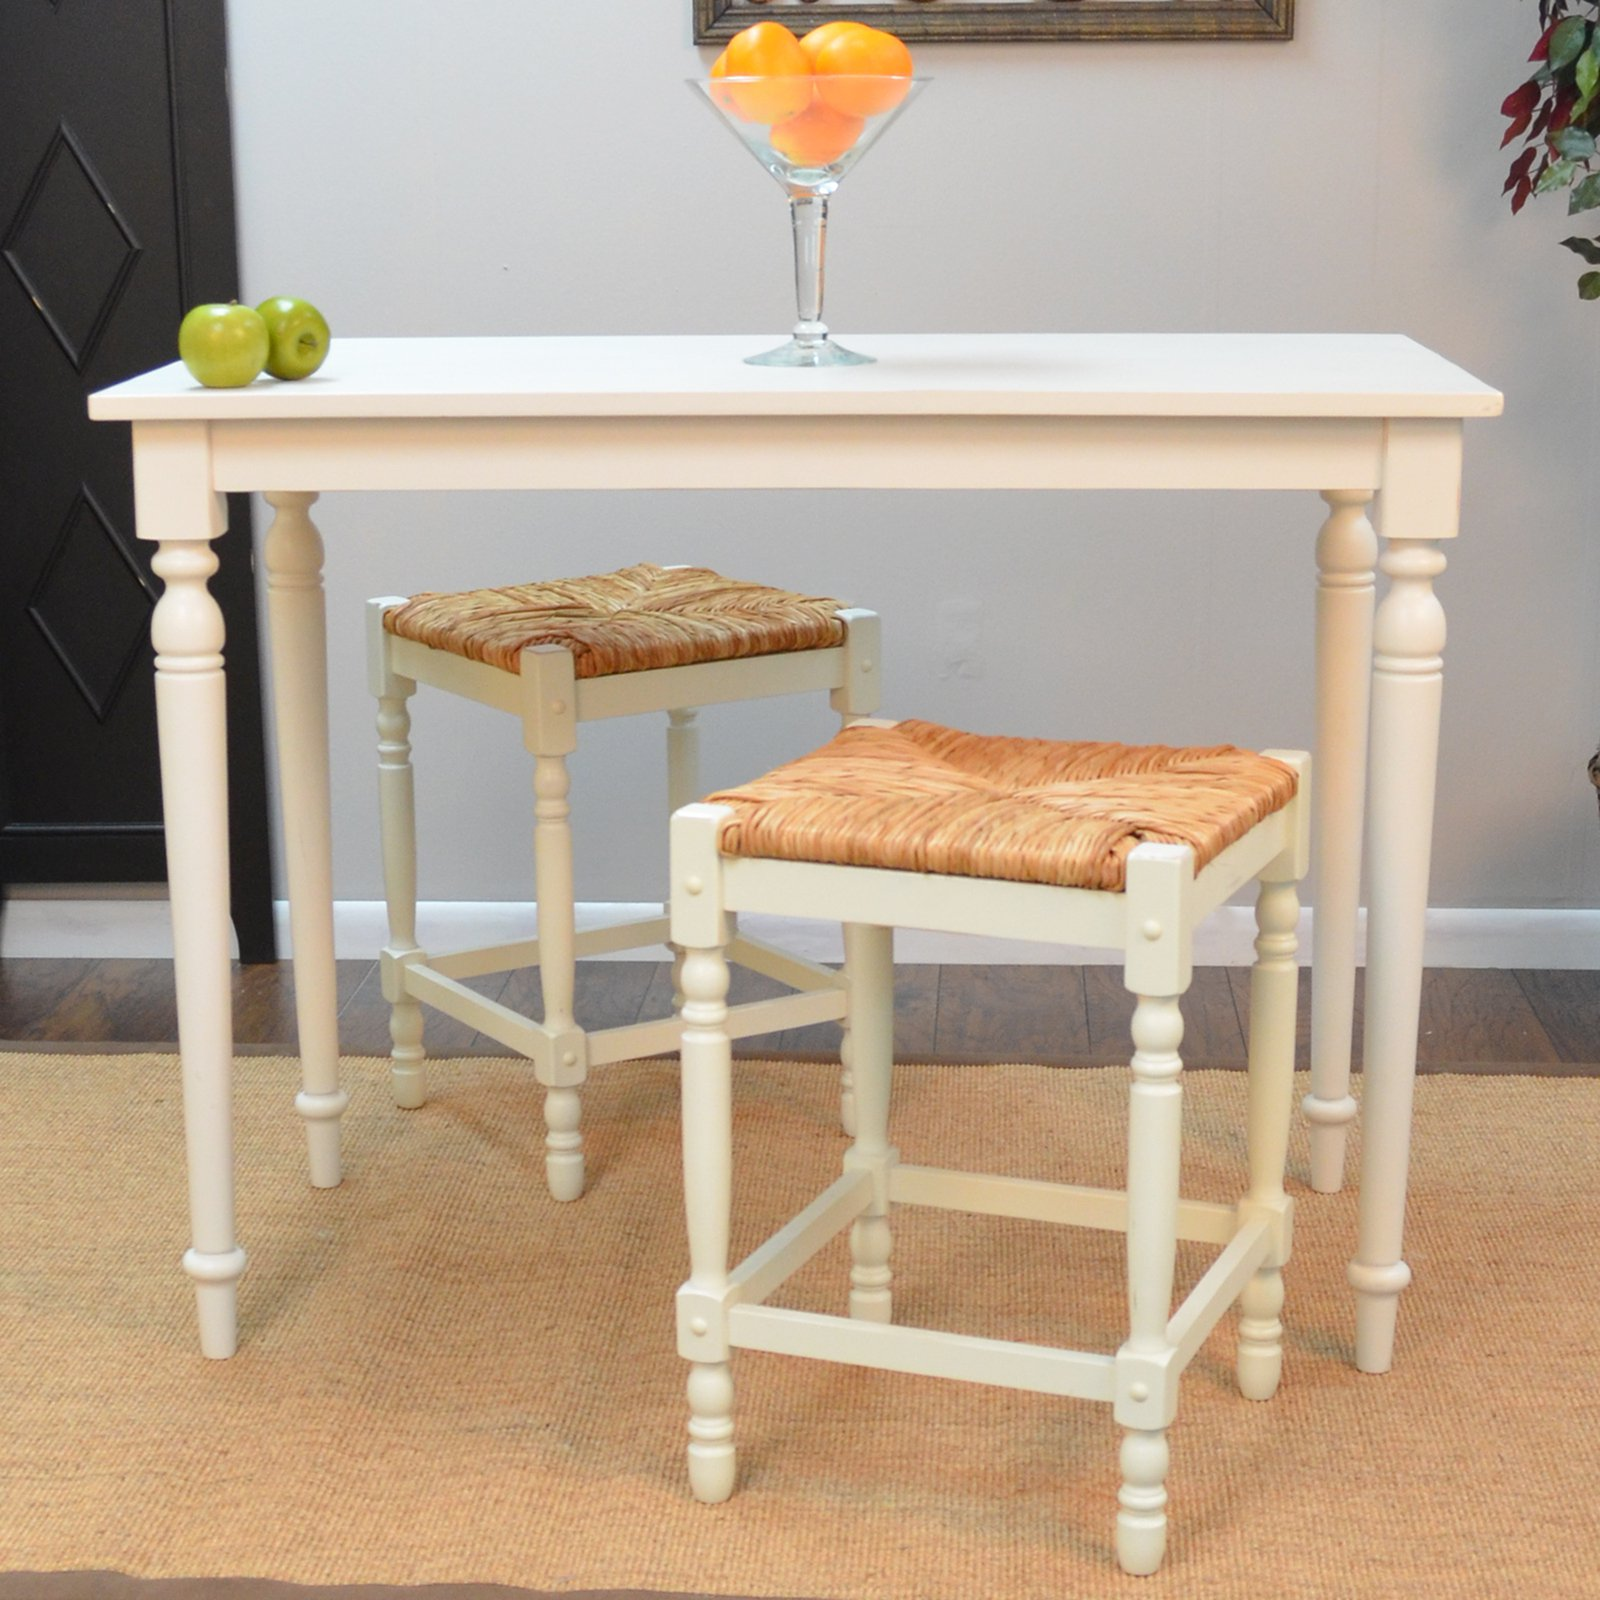 Pub Table w Spindle Legs